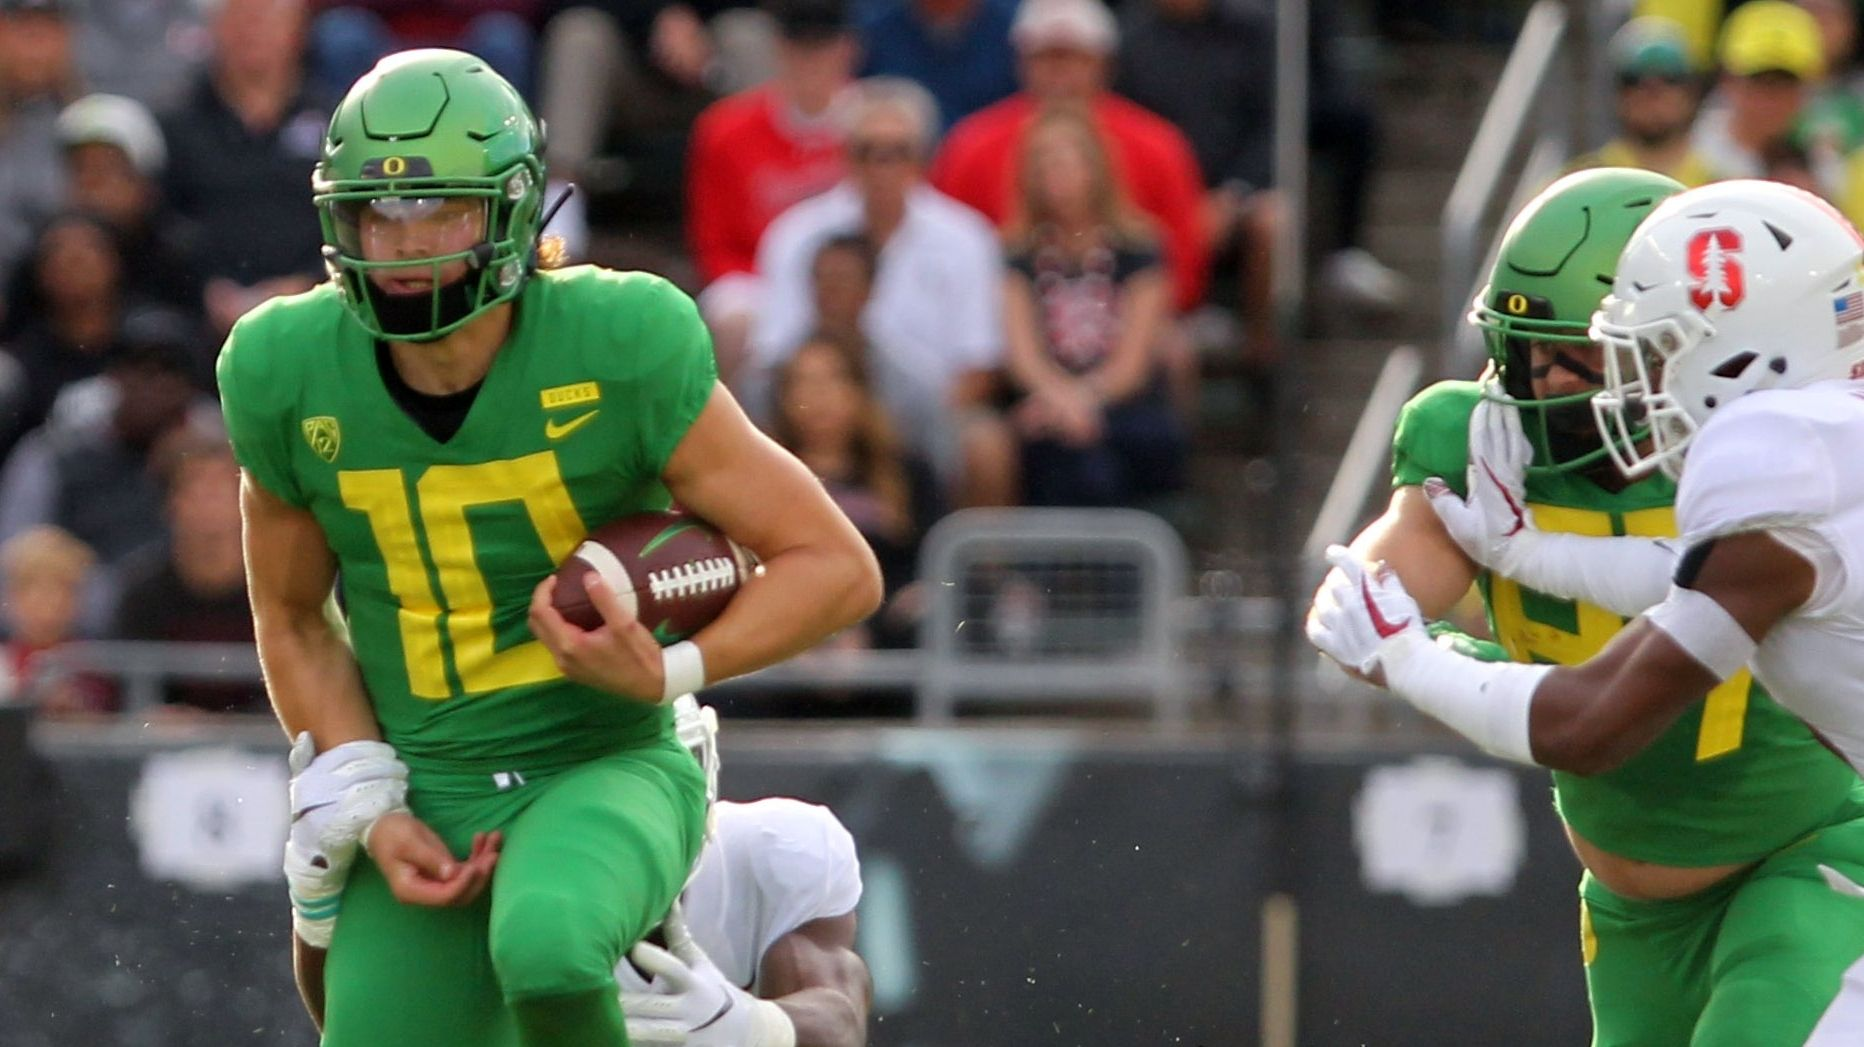 Oregon takes control in the first half